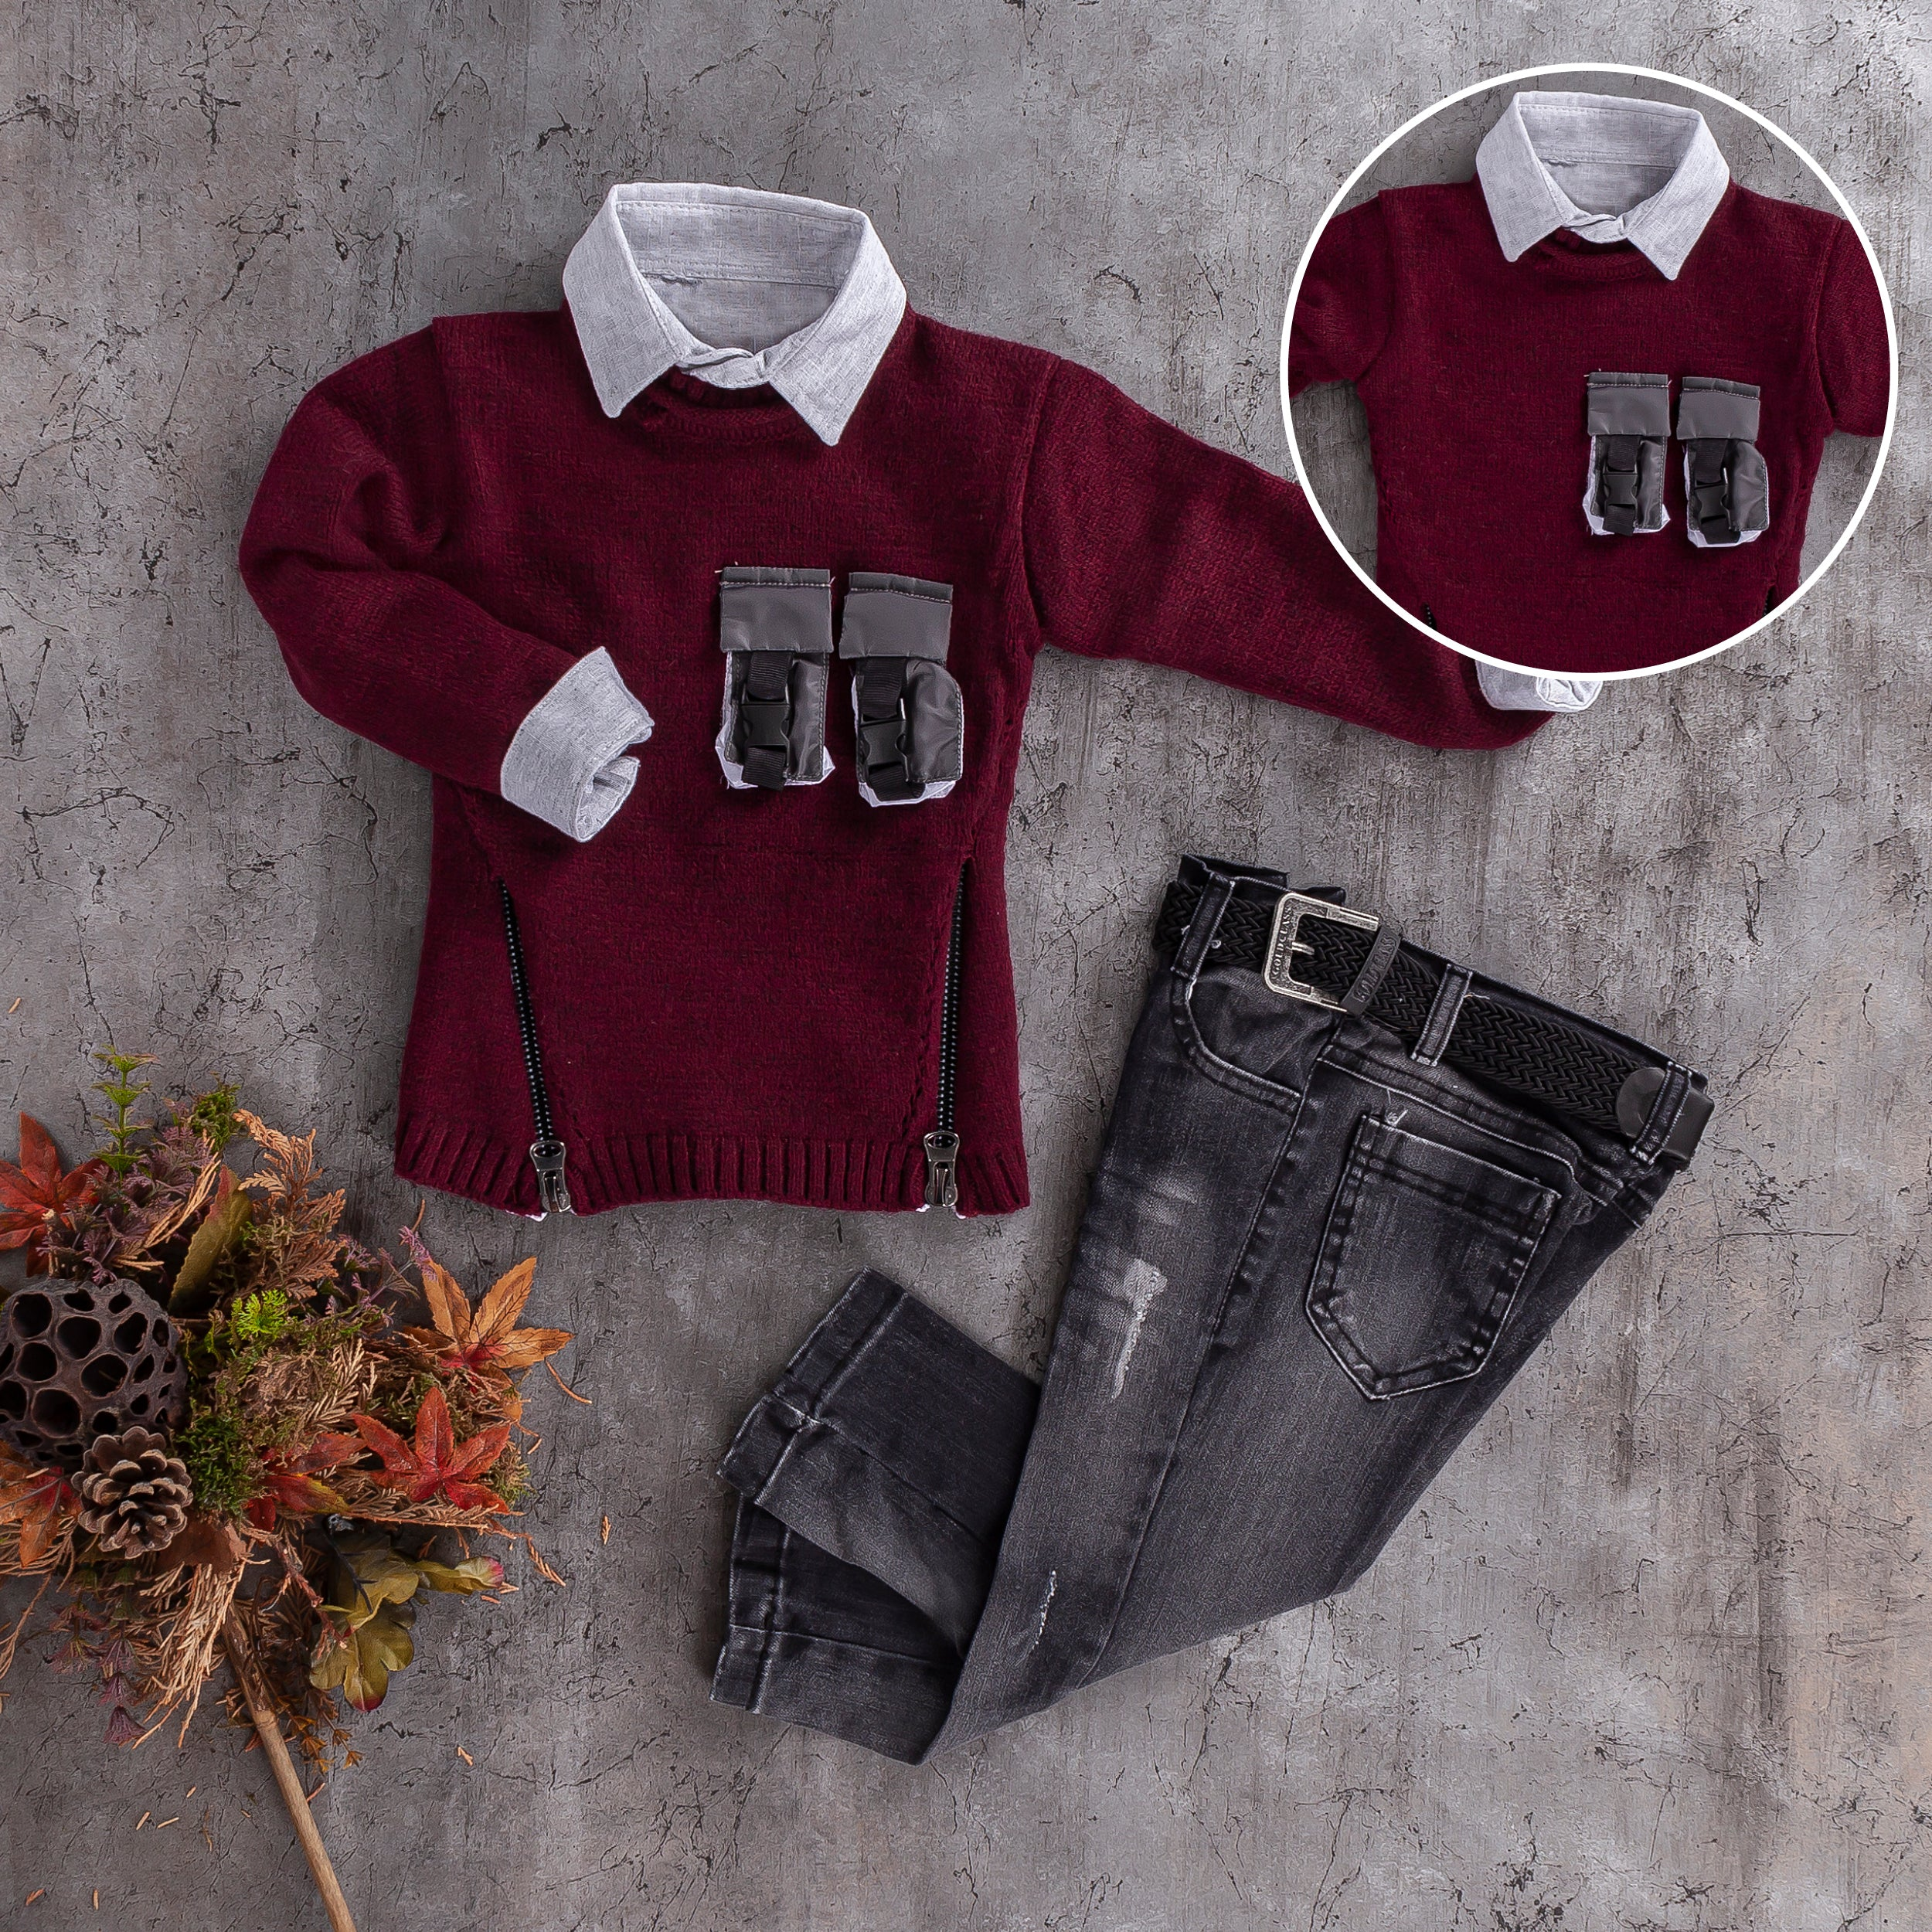 boys stylish knit sweater shirt and jeans sets